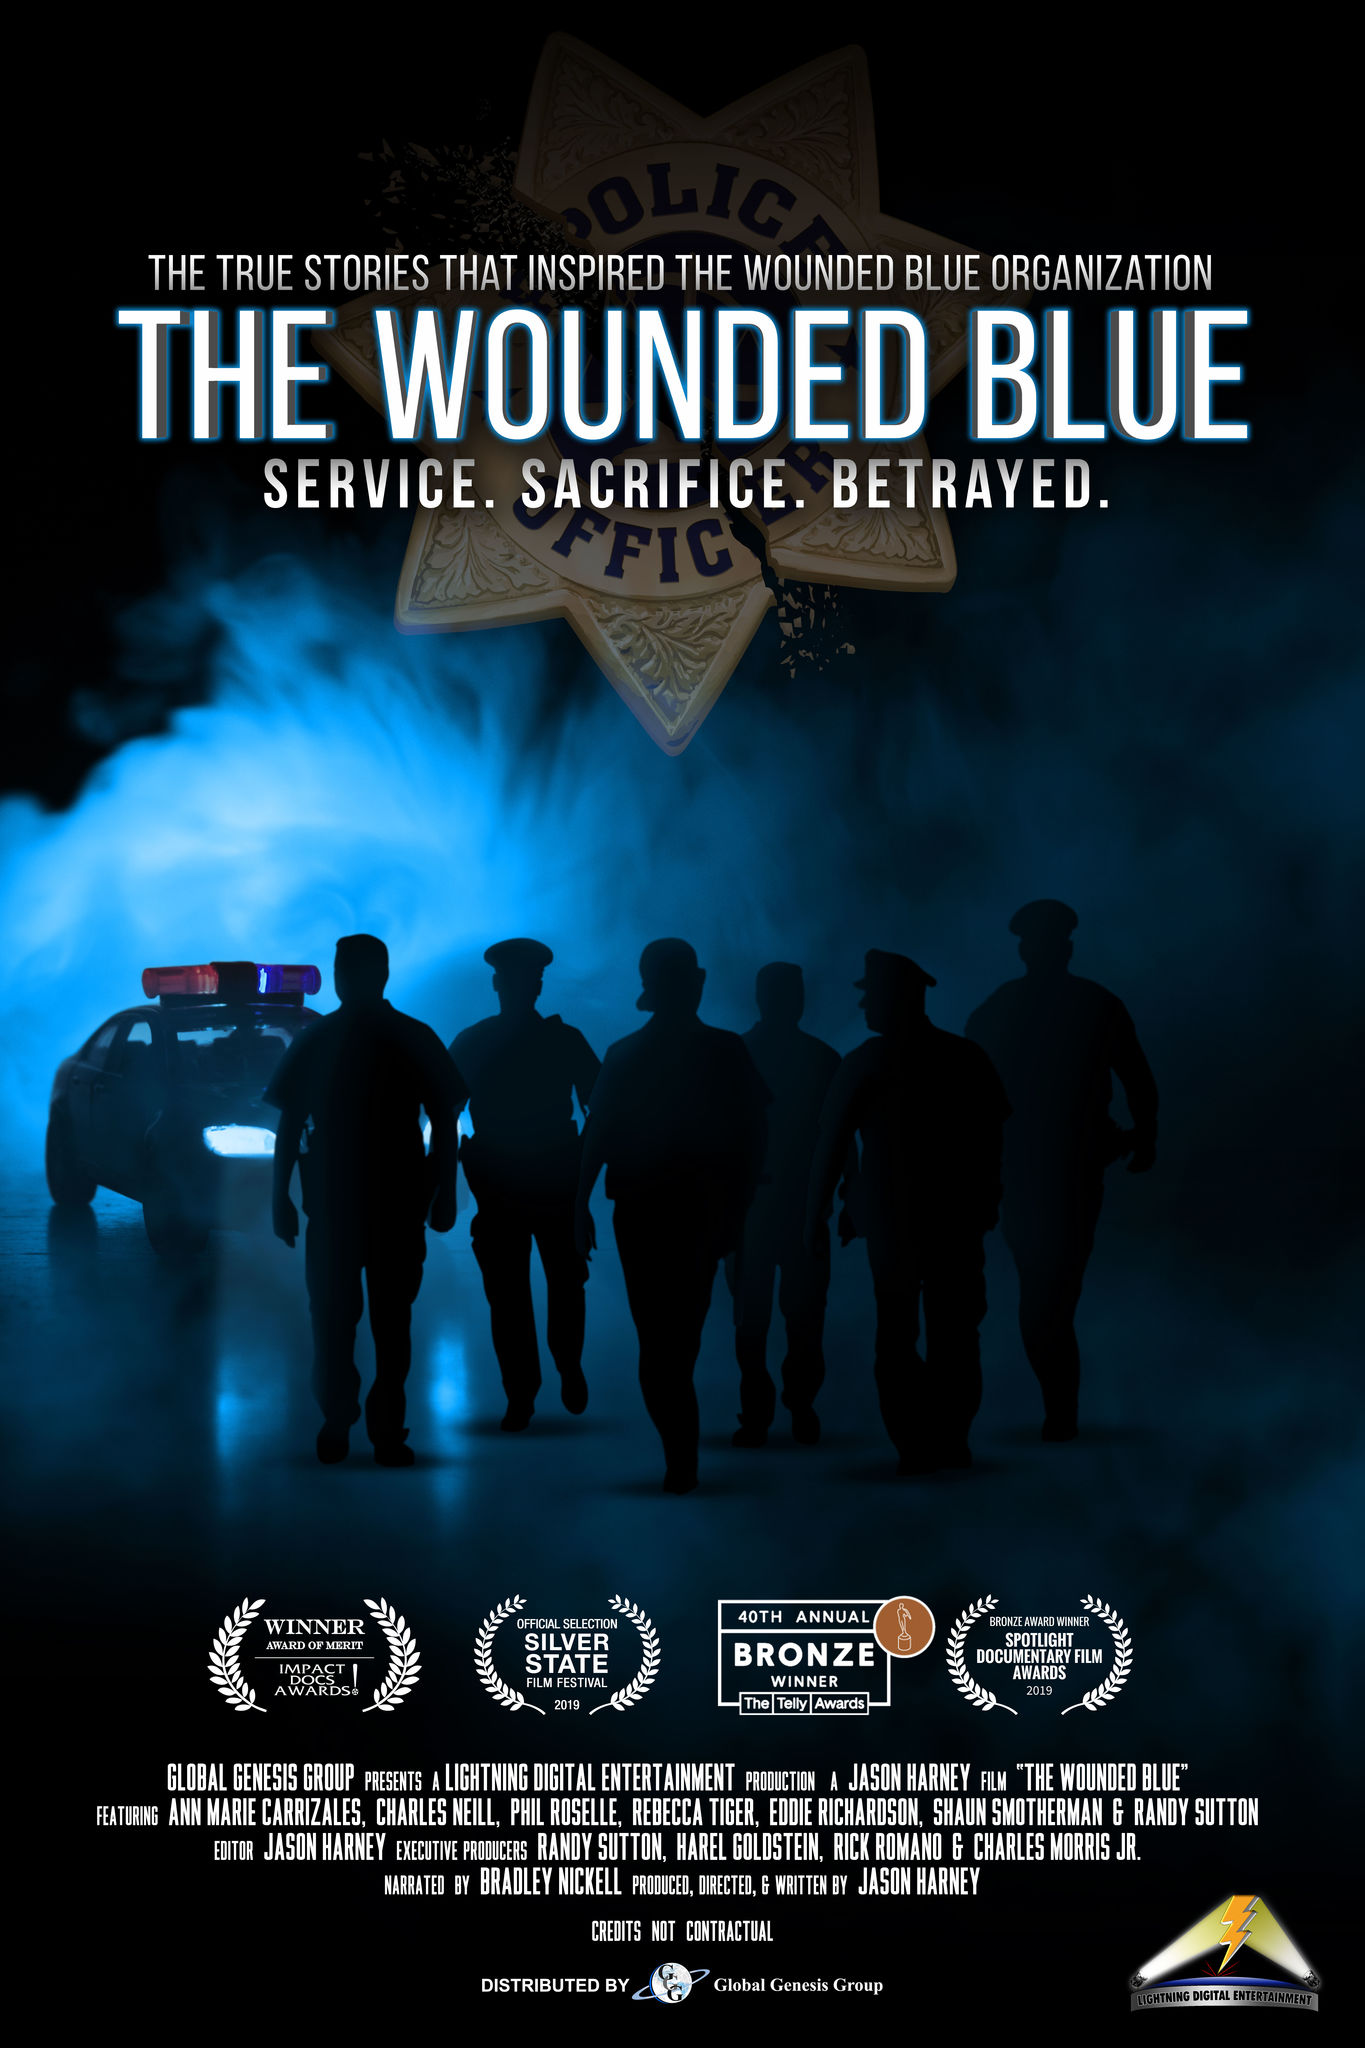 The Wounded Blue